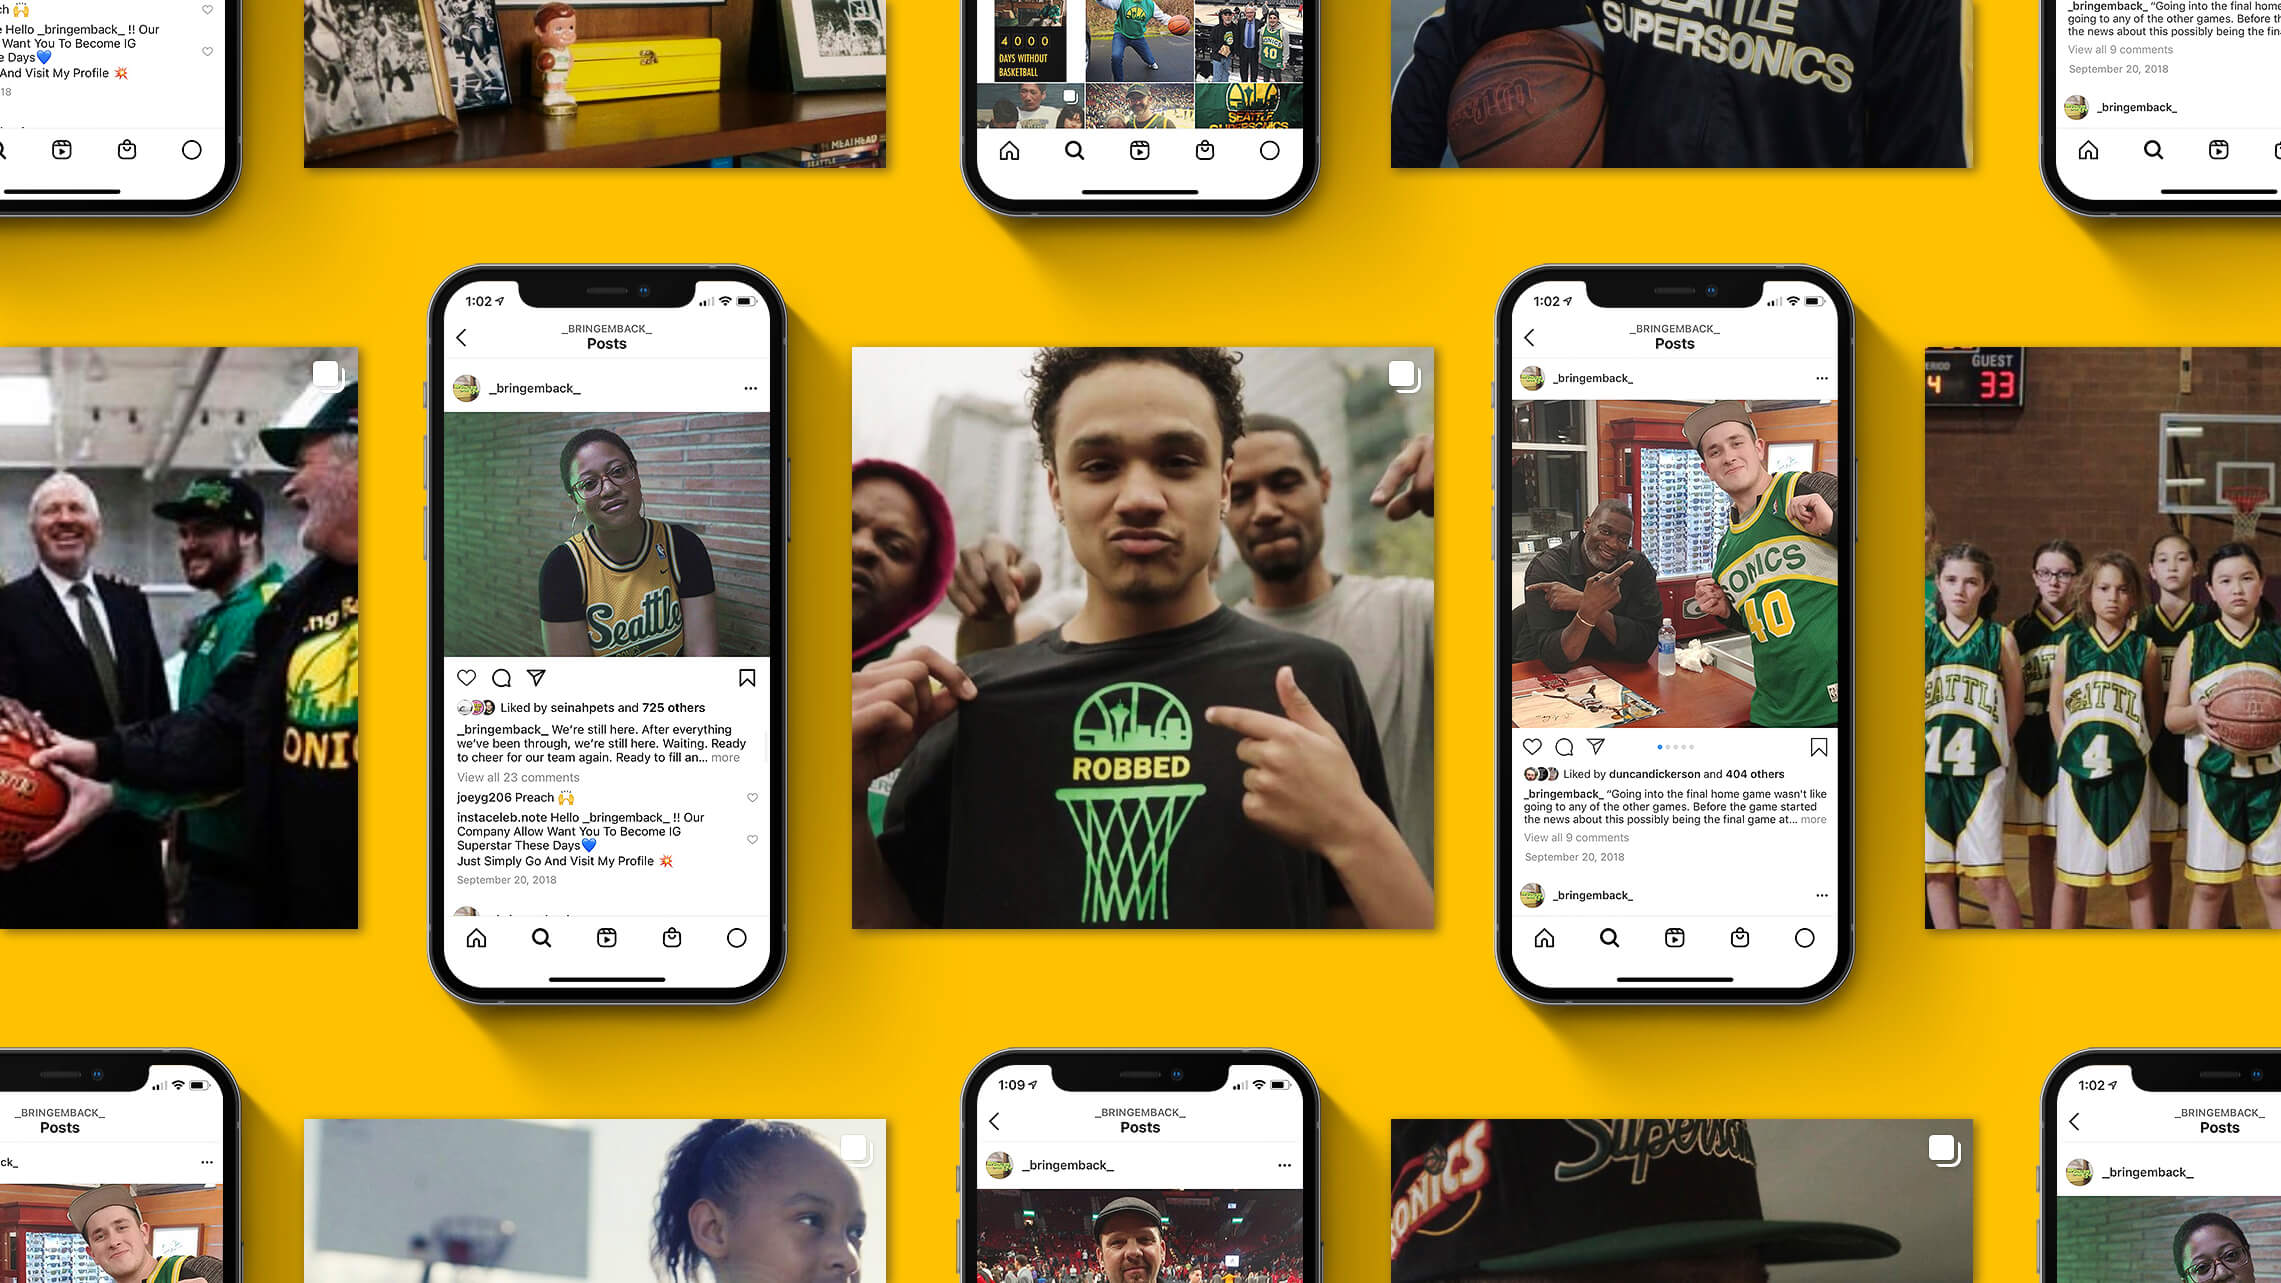 """A series of mobile phone screenshots featuring Instagram posts from the account """"@_bringemback_"""". A variety of photos show celebratory fans wearing Sonics jerseys."""